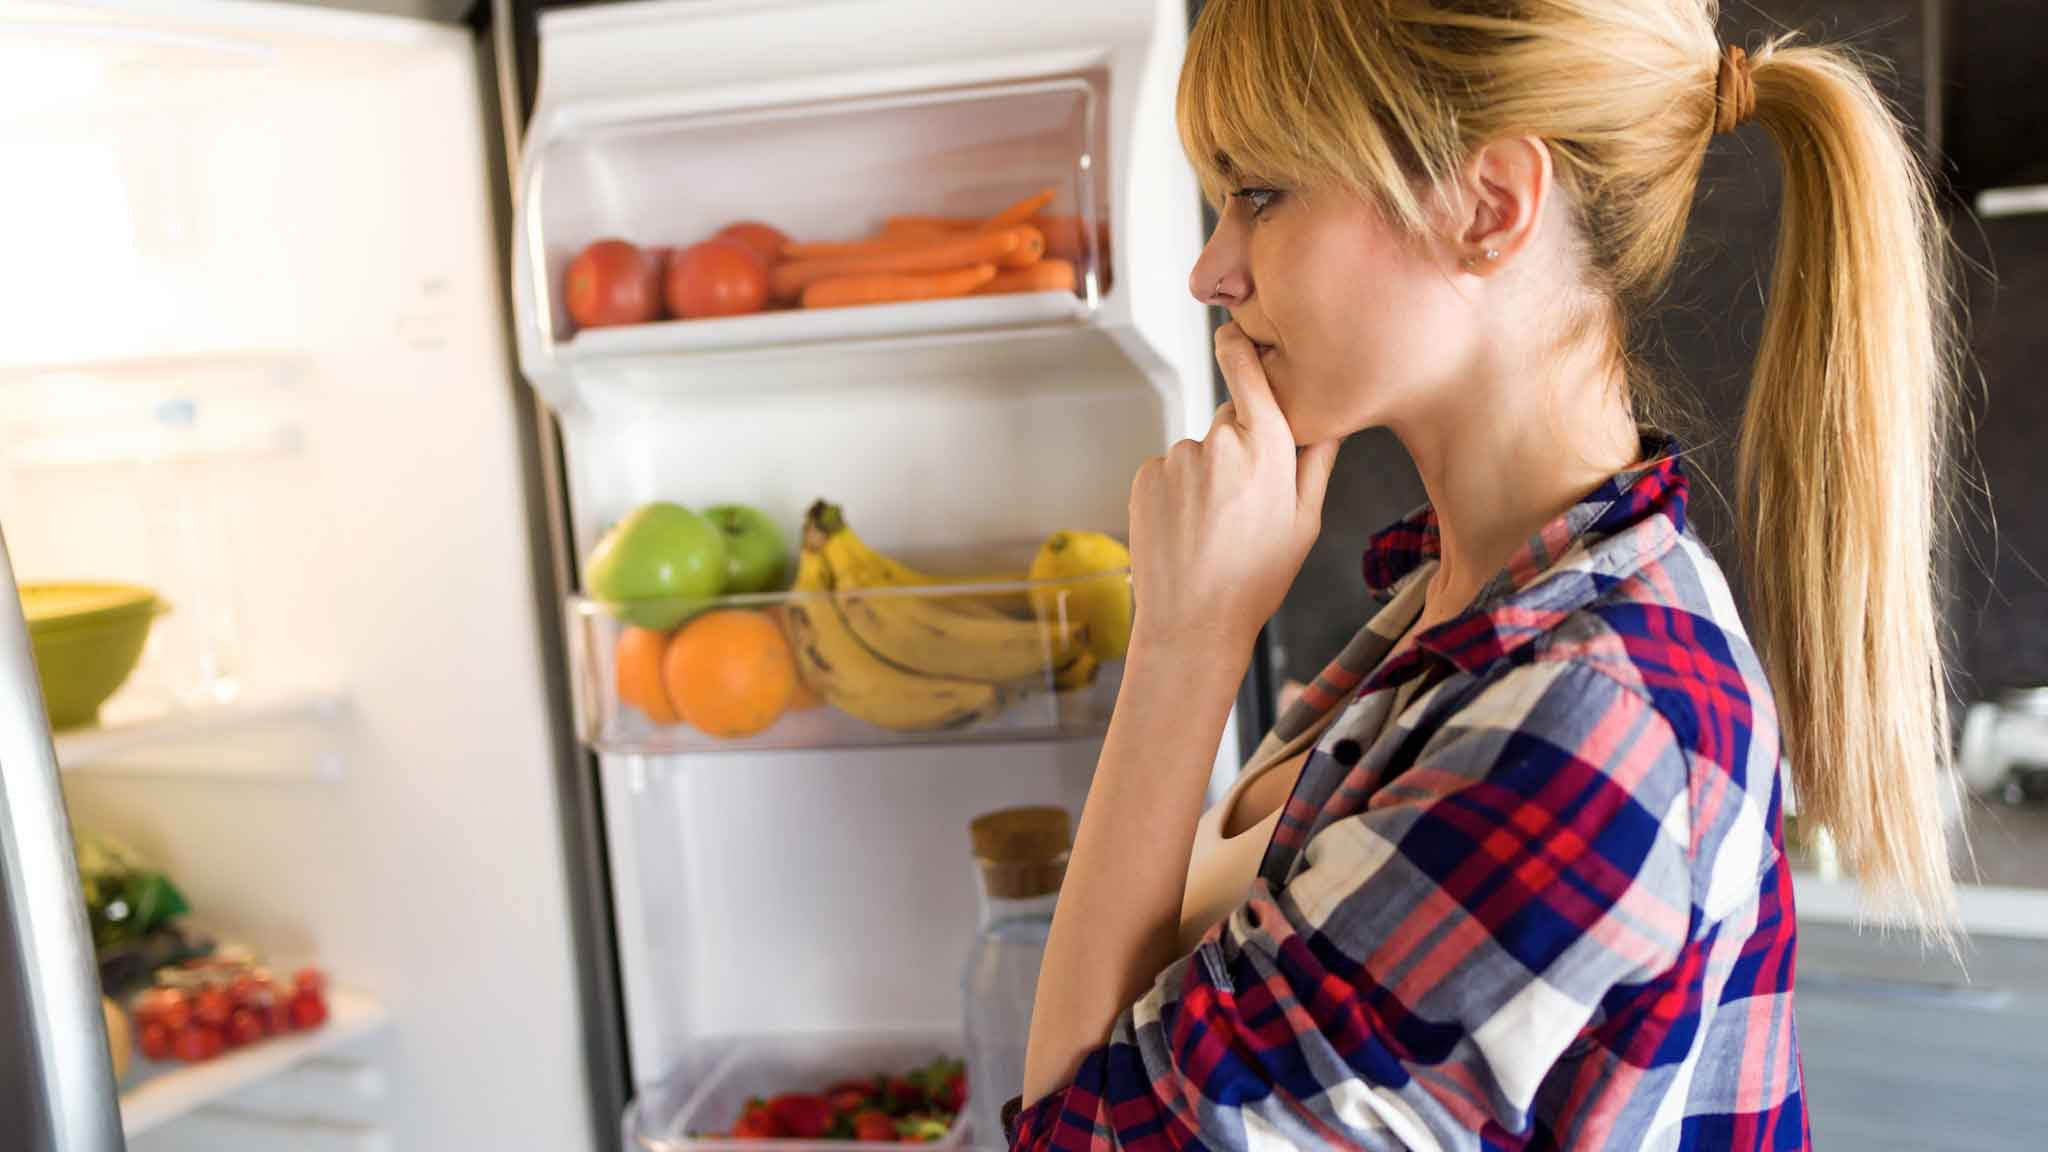 woman in the refrigerator wondering what to eat and the refrigerator is full of healthy food